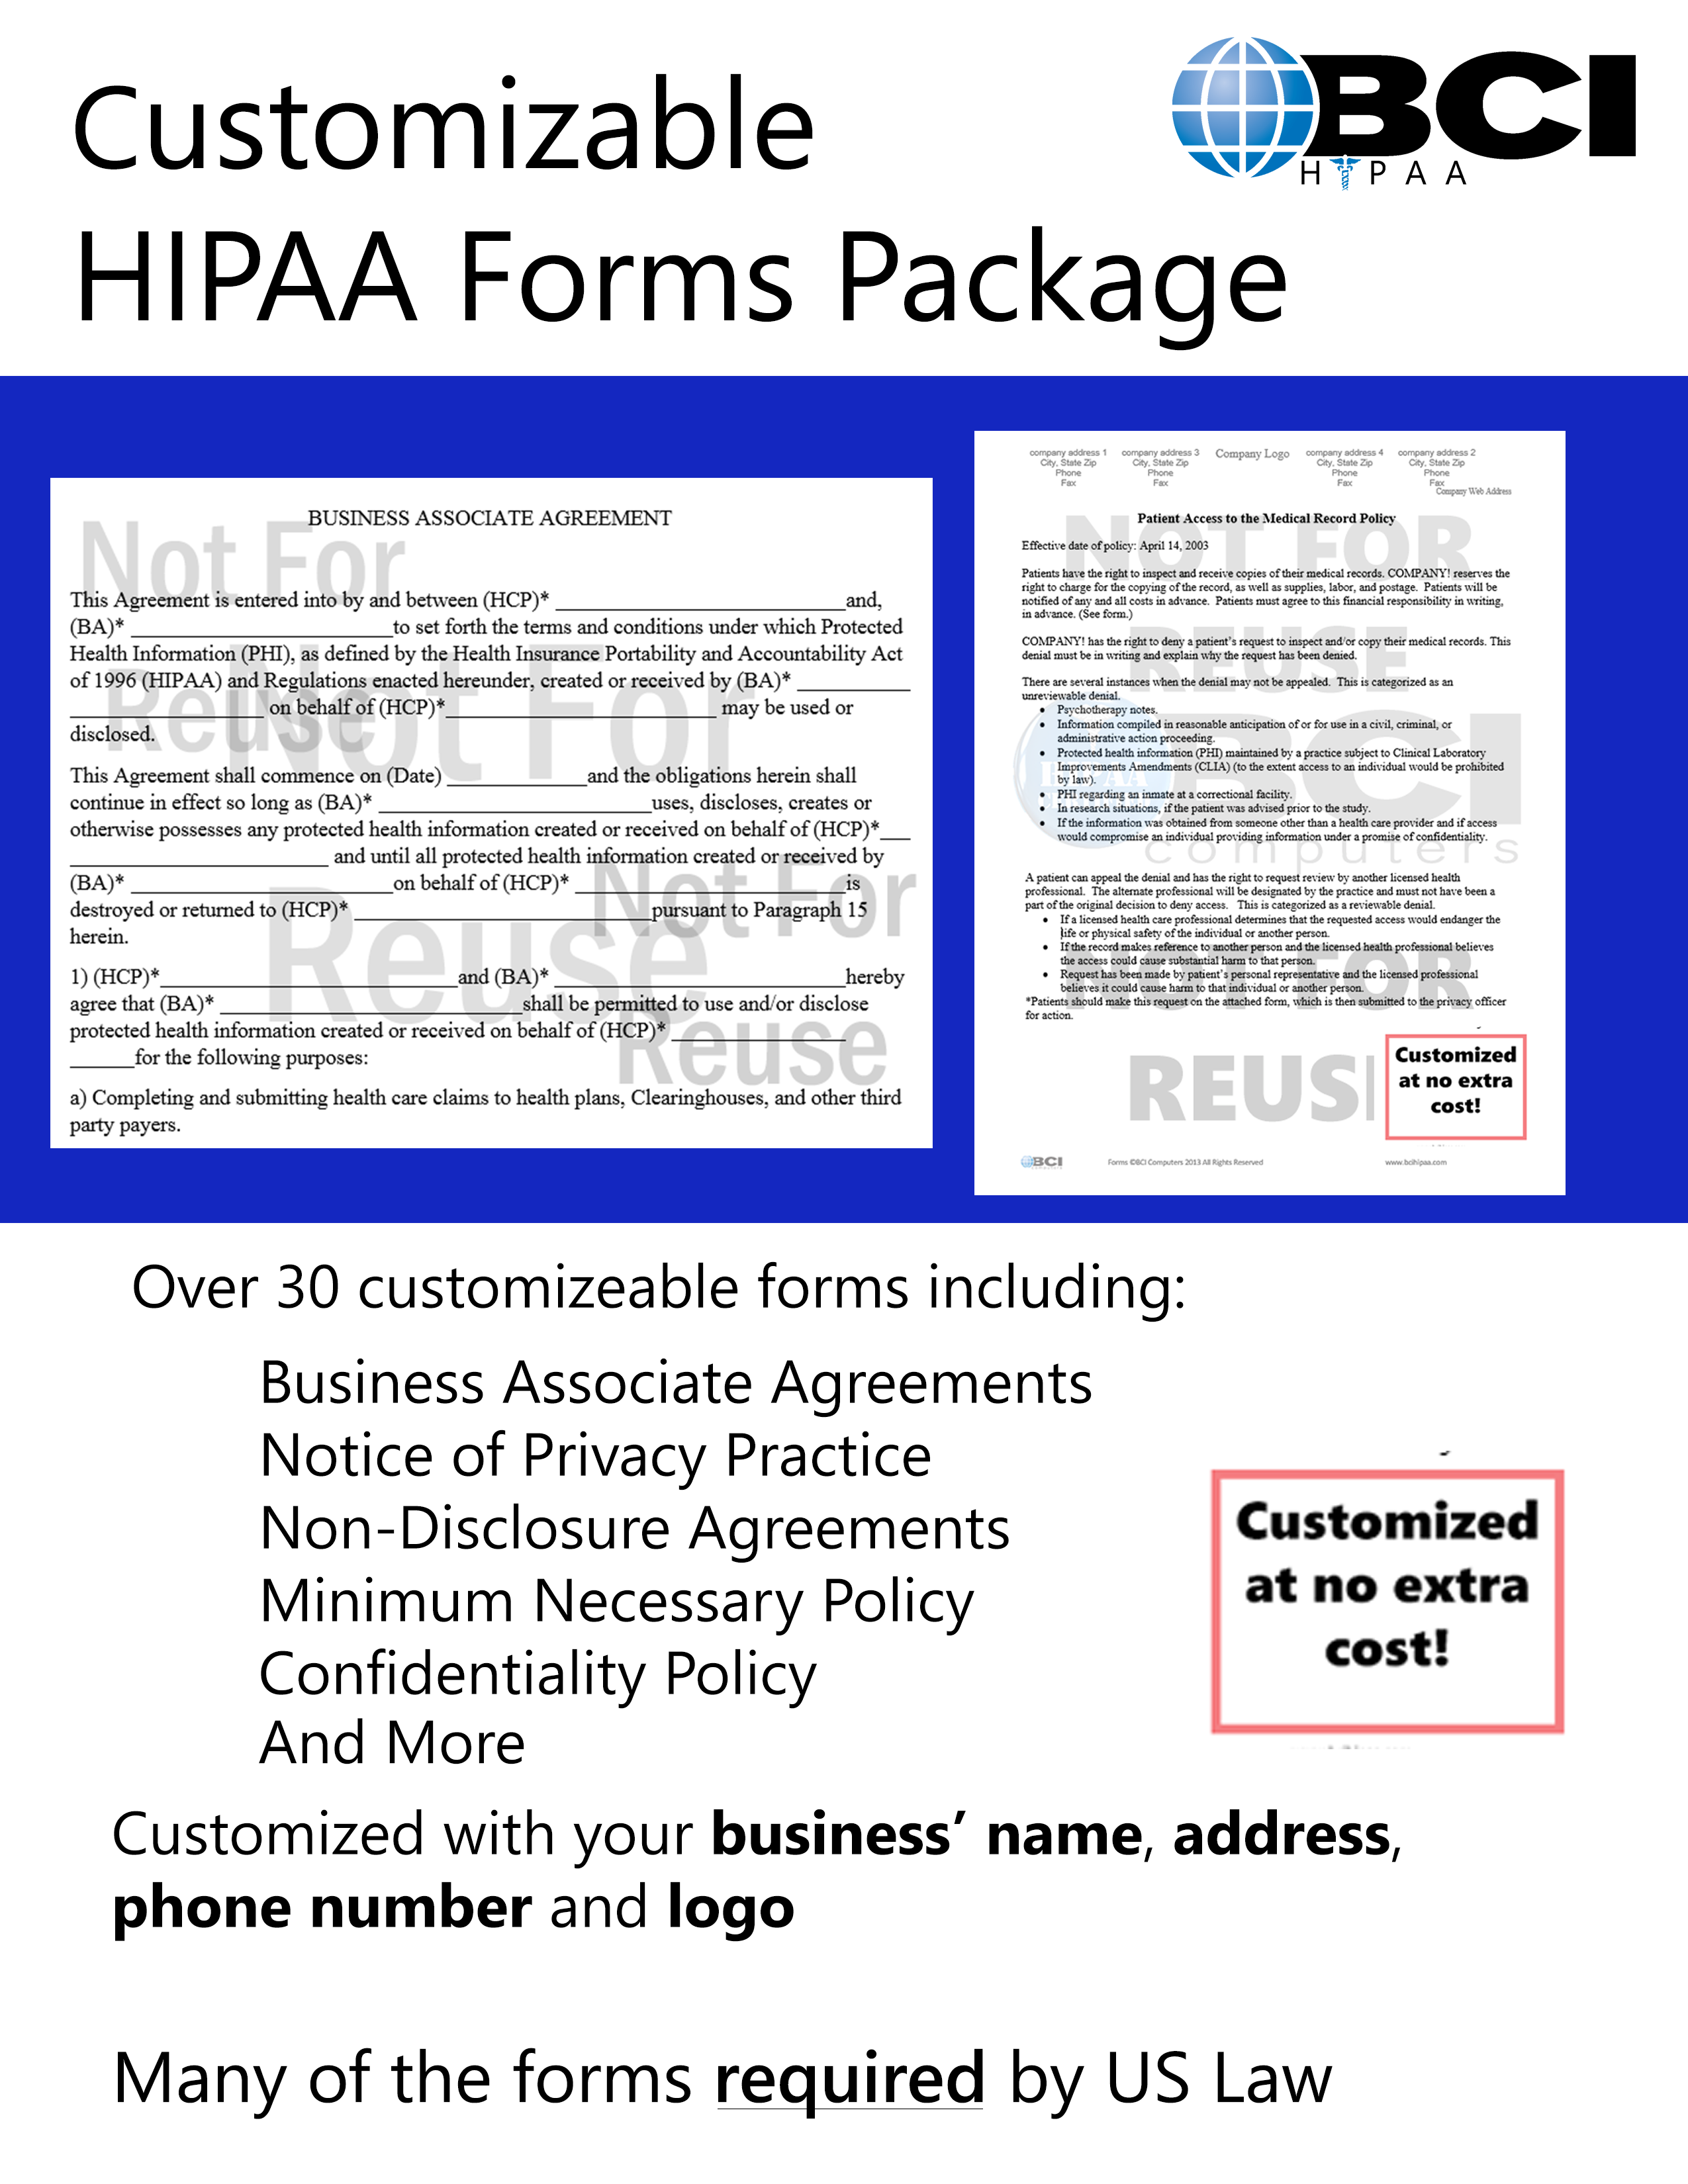 HIPAA Customized Forms with Policies 2016 - BCI Computers